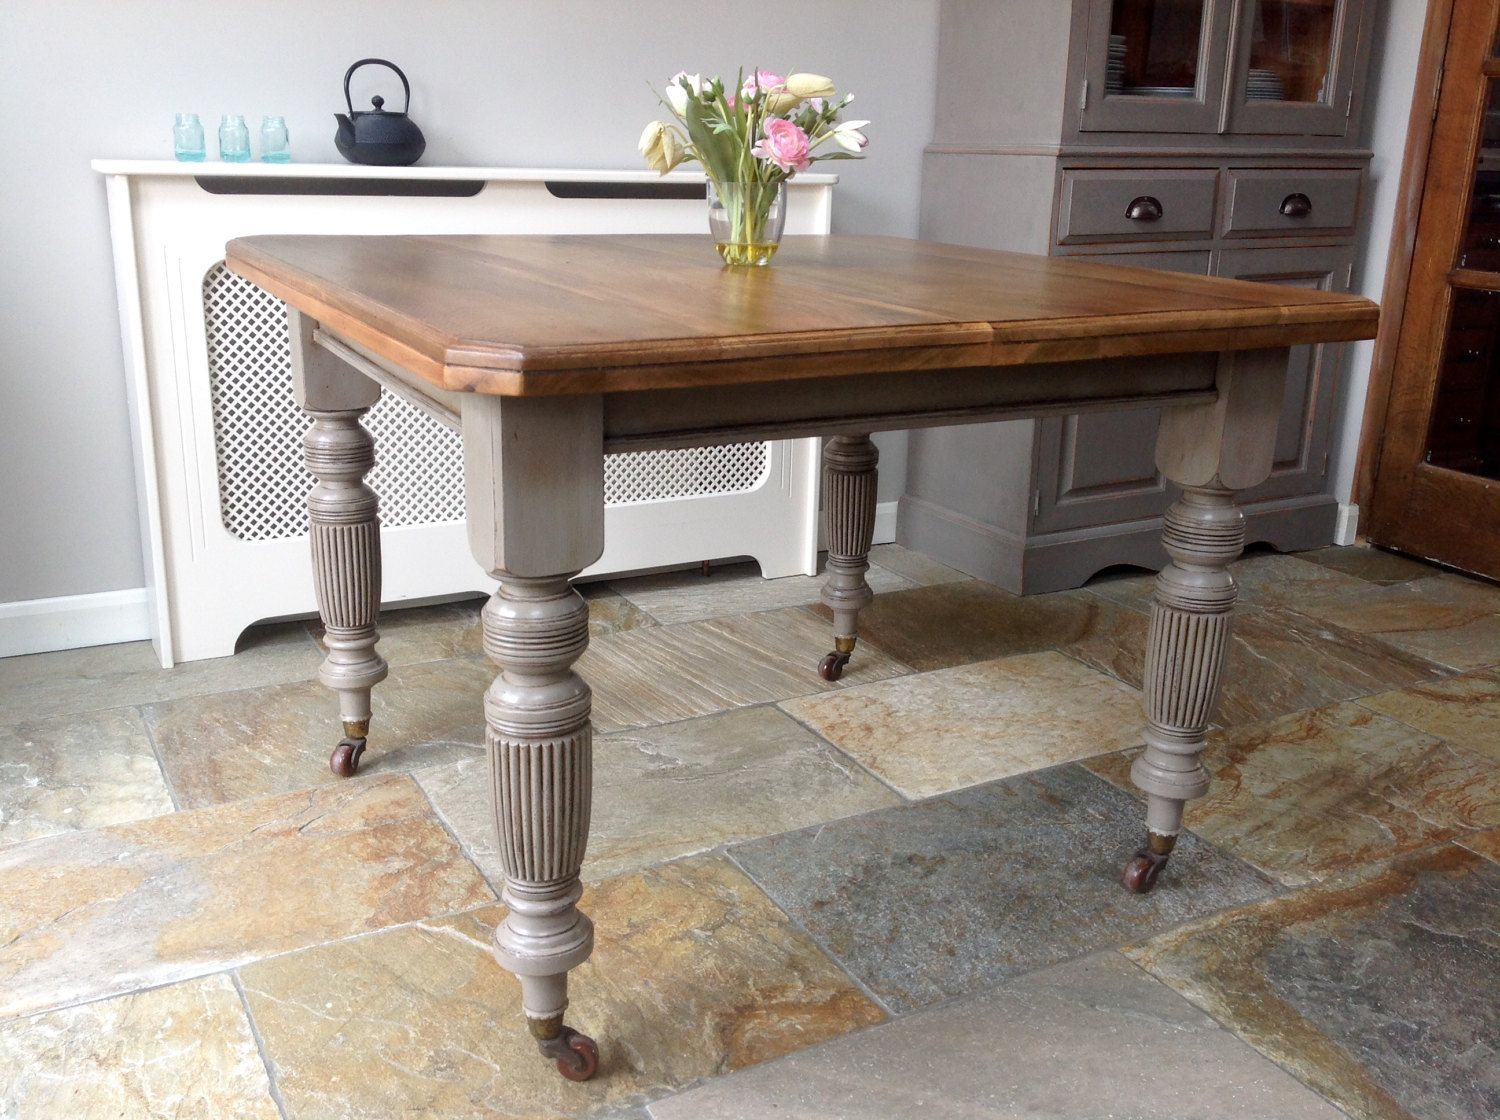 Antique Victorian Pine Dining Table On Castors Painted Annie Sloan Grey By Clynecofurniture On Etsy Pine Dining Table Dining Table Victorian Dining Tables